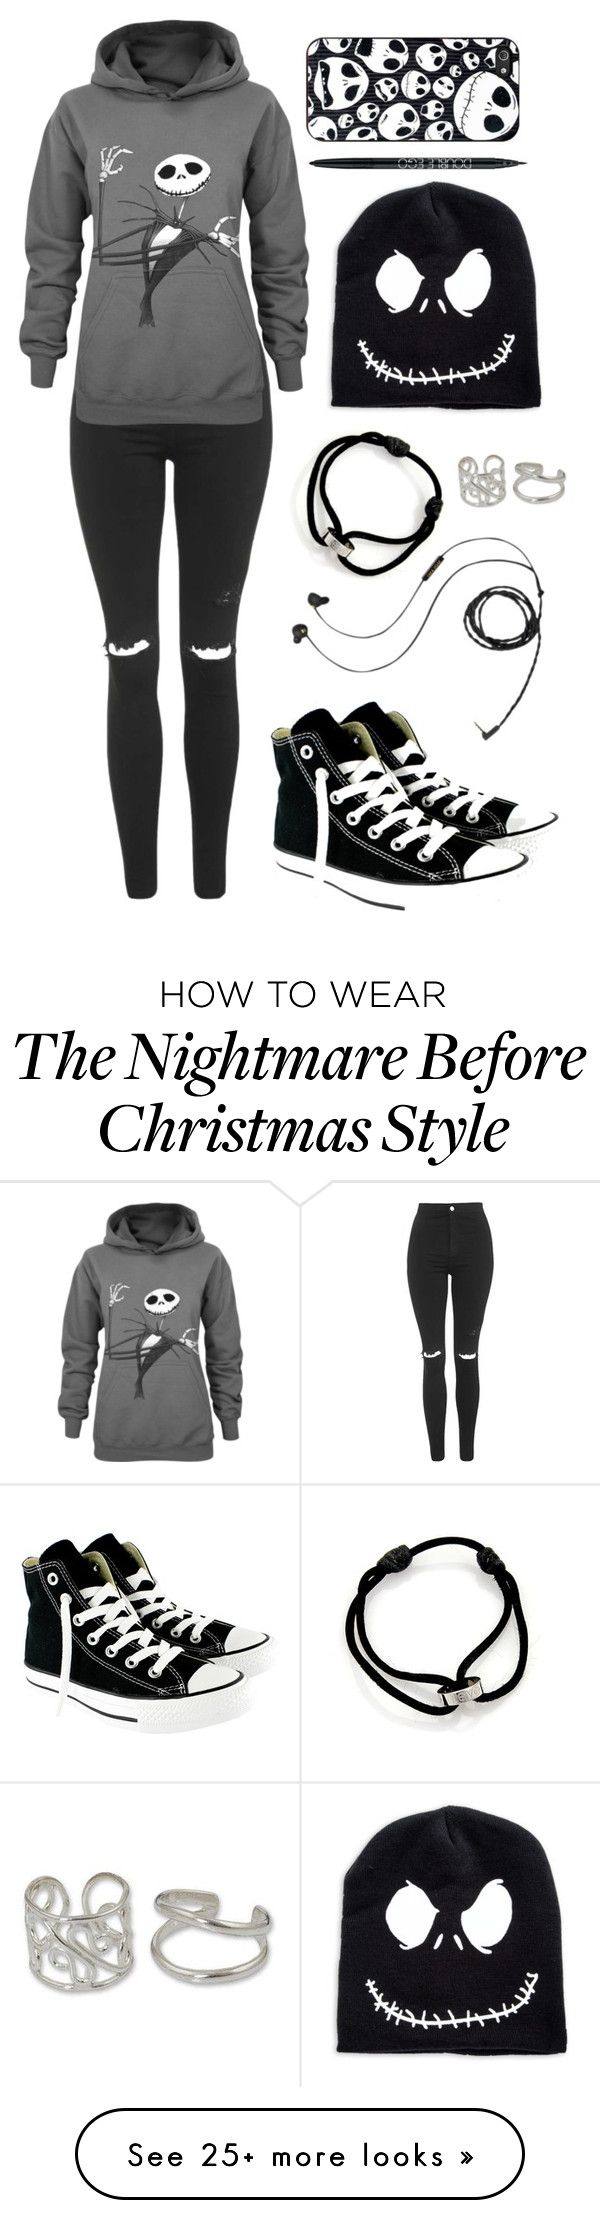 782 Best Images On Pinterest Rings Engagements And I Am The Gold Black Sweatshort Hitam Xl When Someone Asks For My Favorite Holiday They Will Be Confused Would Just Explain Its Halloween But Sometimes Considered Christmas